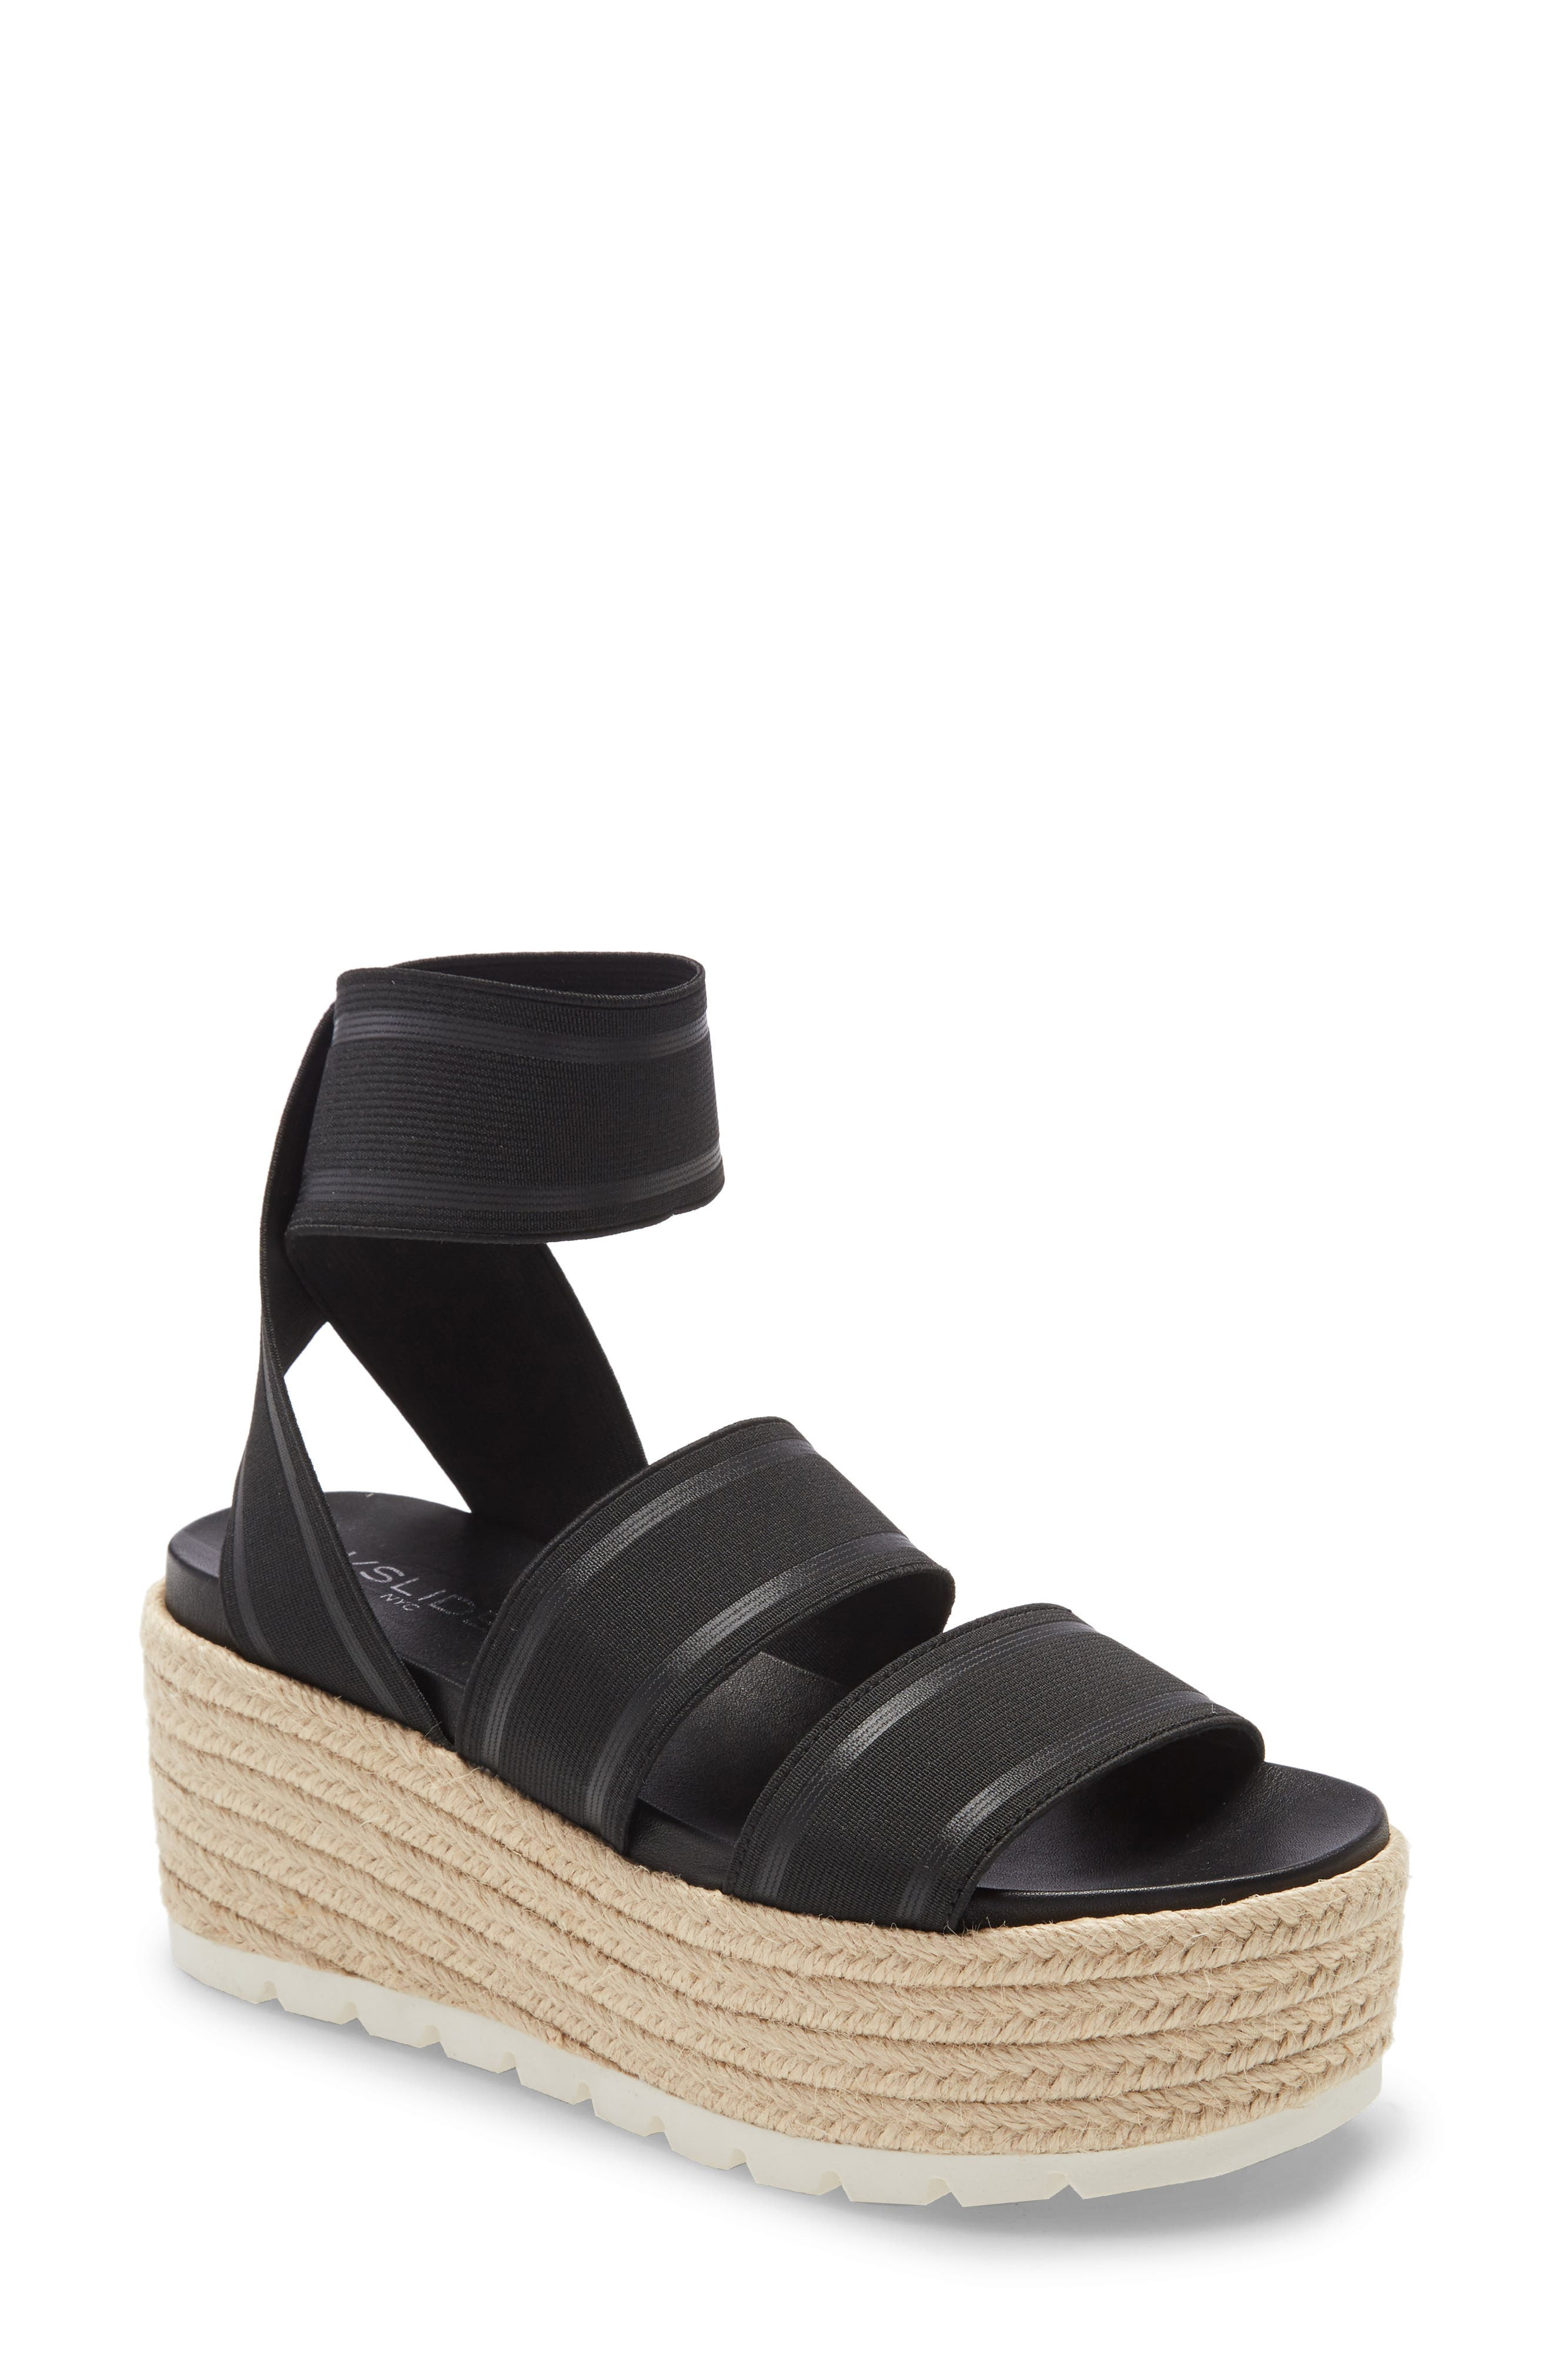 Ropy espadrille-style trim wraps the superchunky platform of an elastic-strap sandal grounded by a sporty rubber sole. Style Name: Jslides Quartz Platform Sandal (Women). Style Number: 6015381 1. Available in stores.